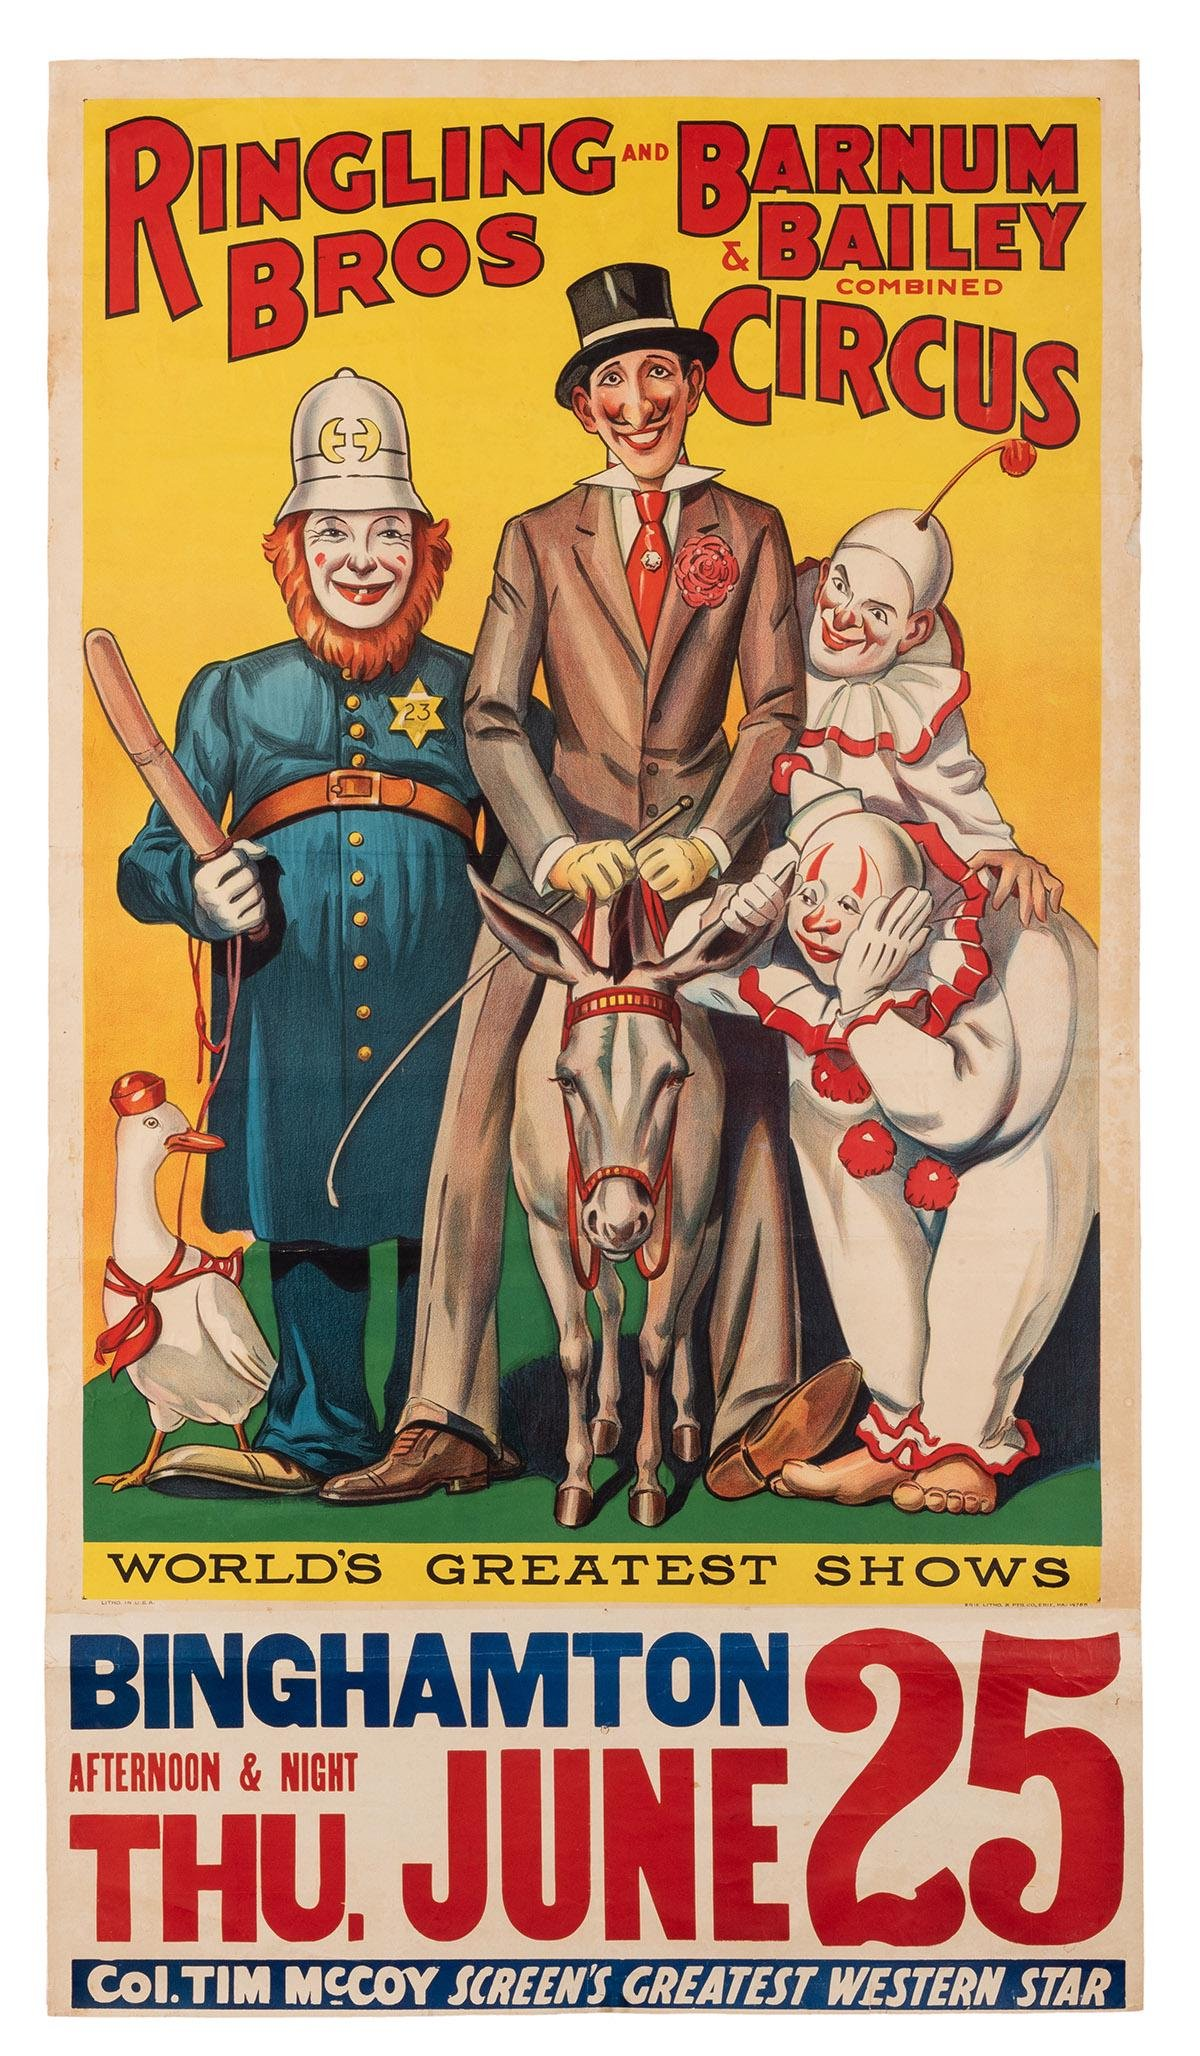 Ringling Brothers and Barnum & Bailey. [Clowns].